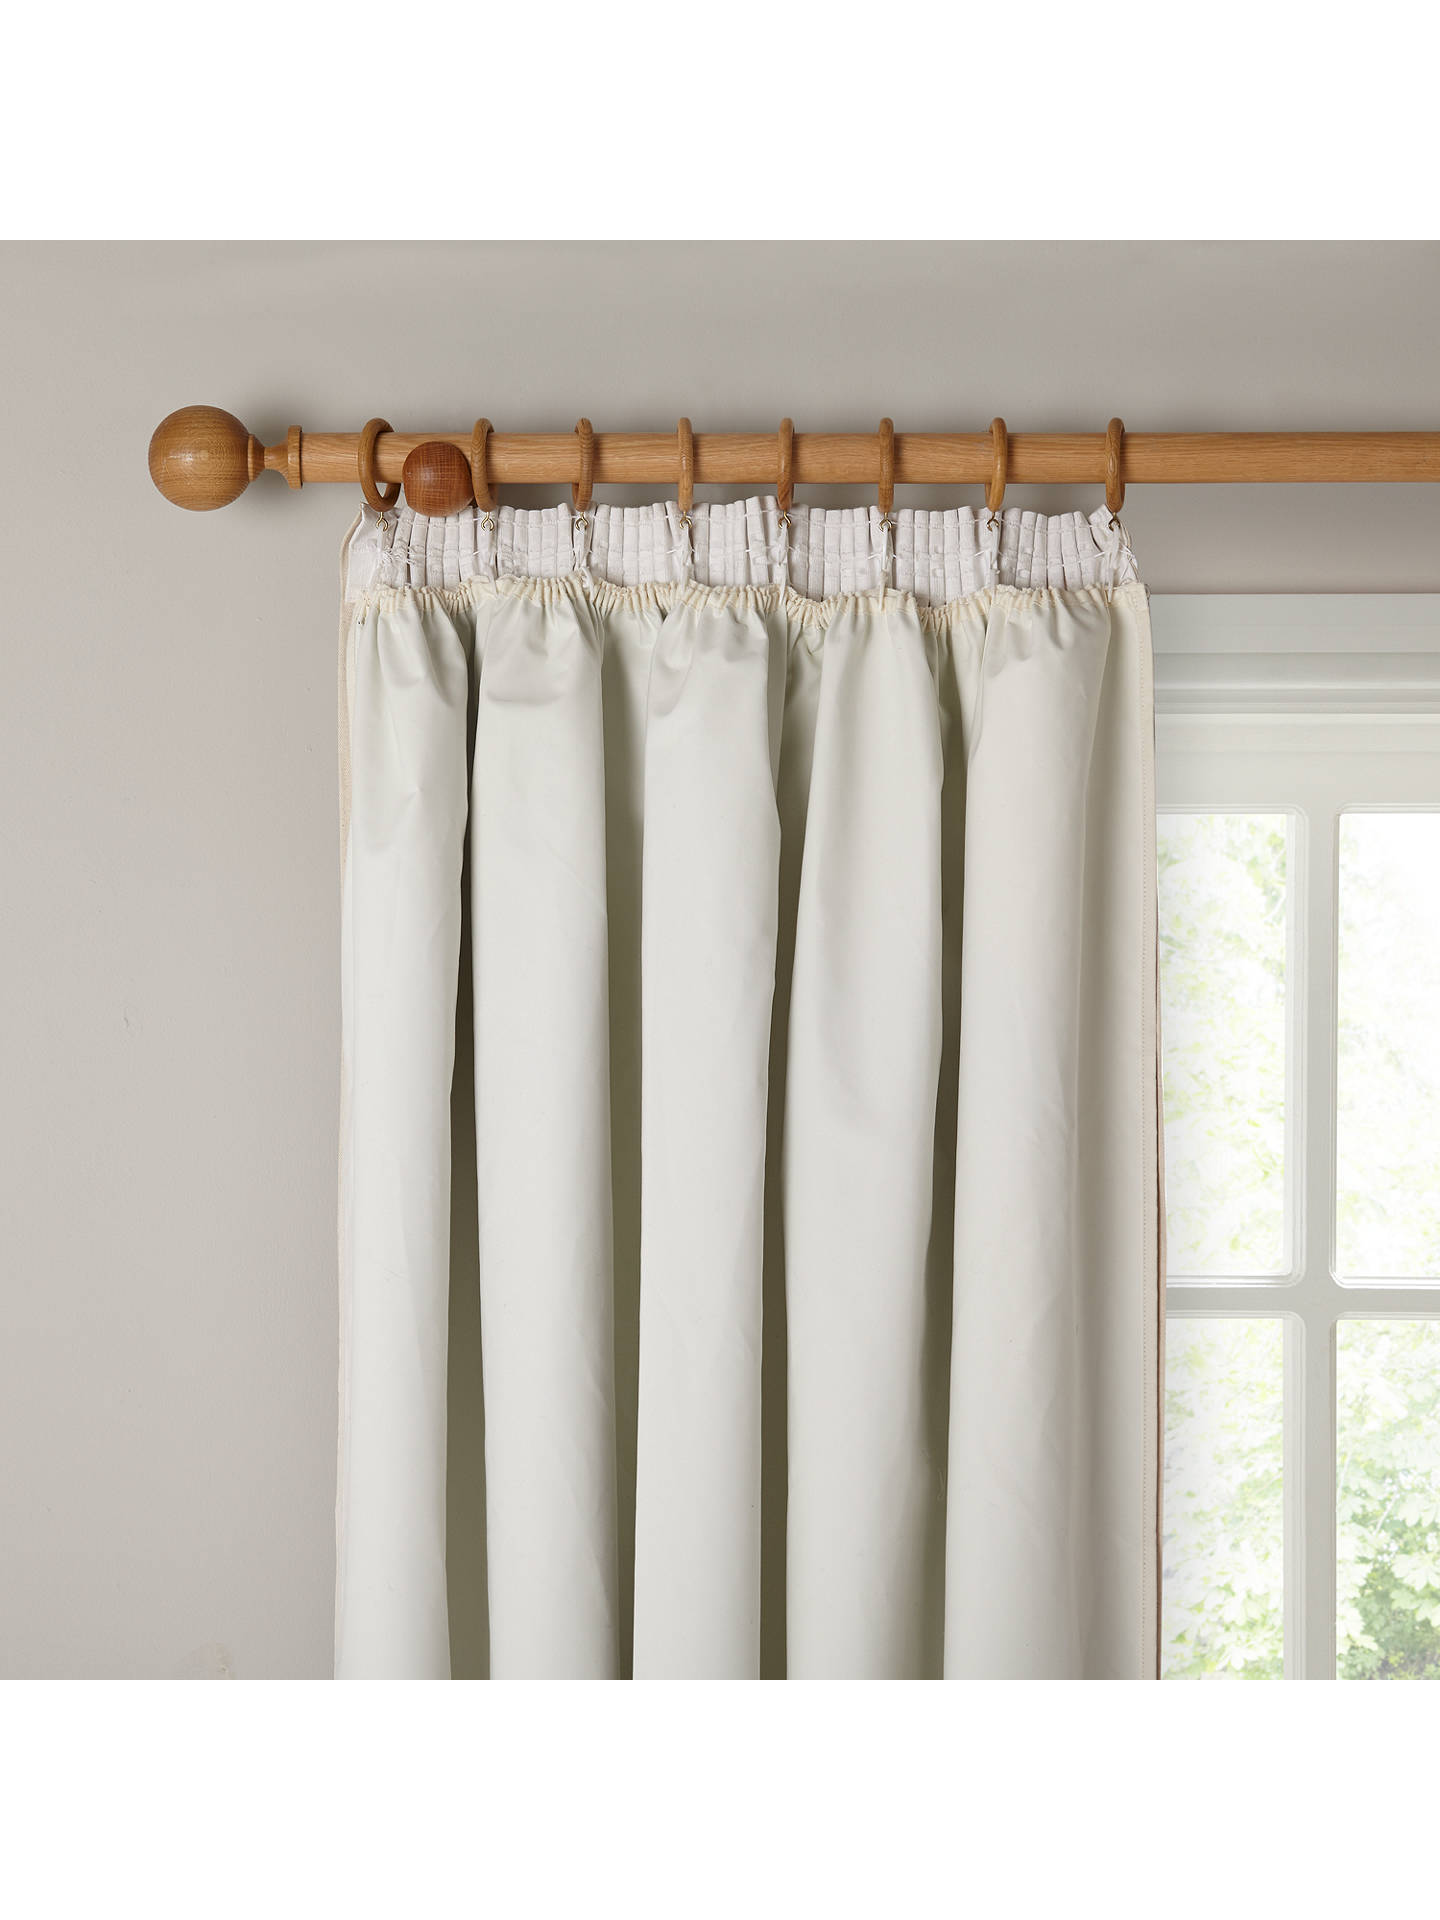 BuyJohn Lewis & Partners Pencil Pleat Pair Blackout Curtain Linings, Ivory, W162 x Drop 130cm Online at johnlewis.com